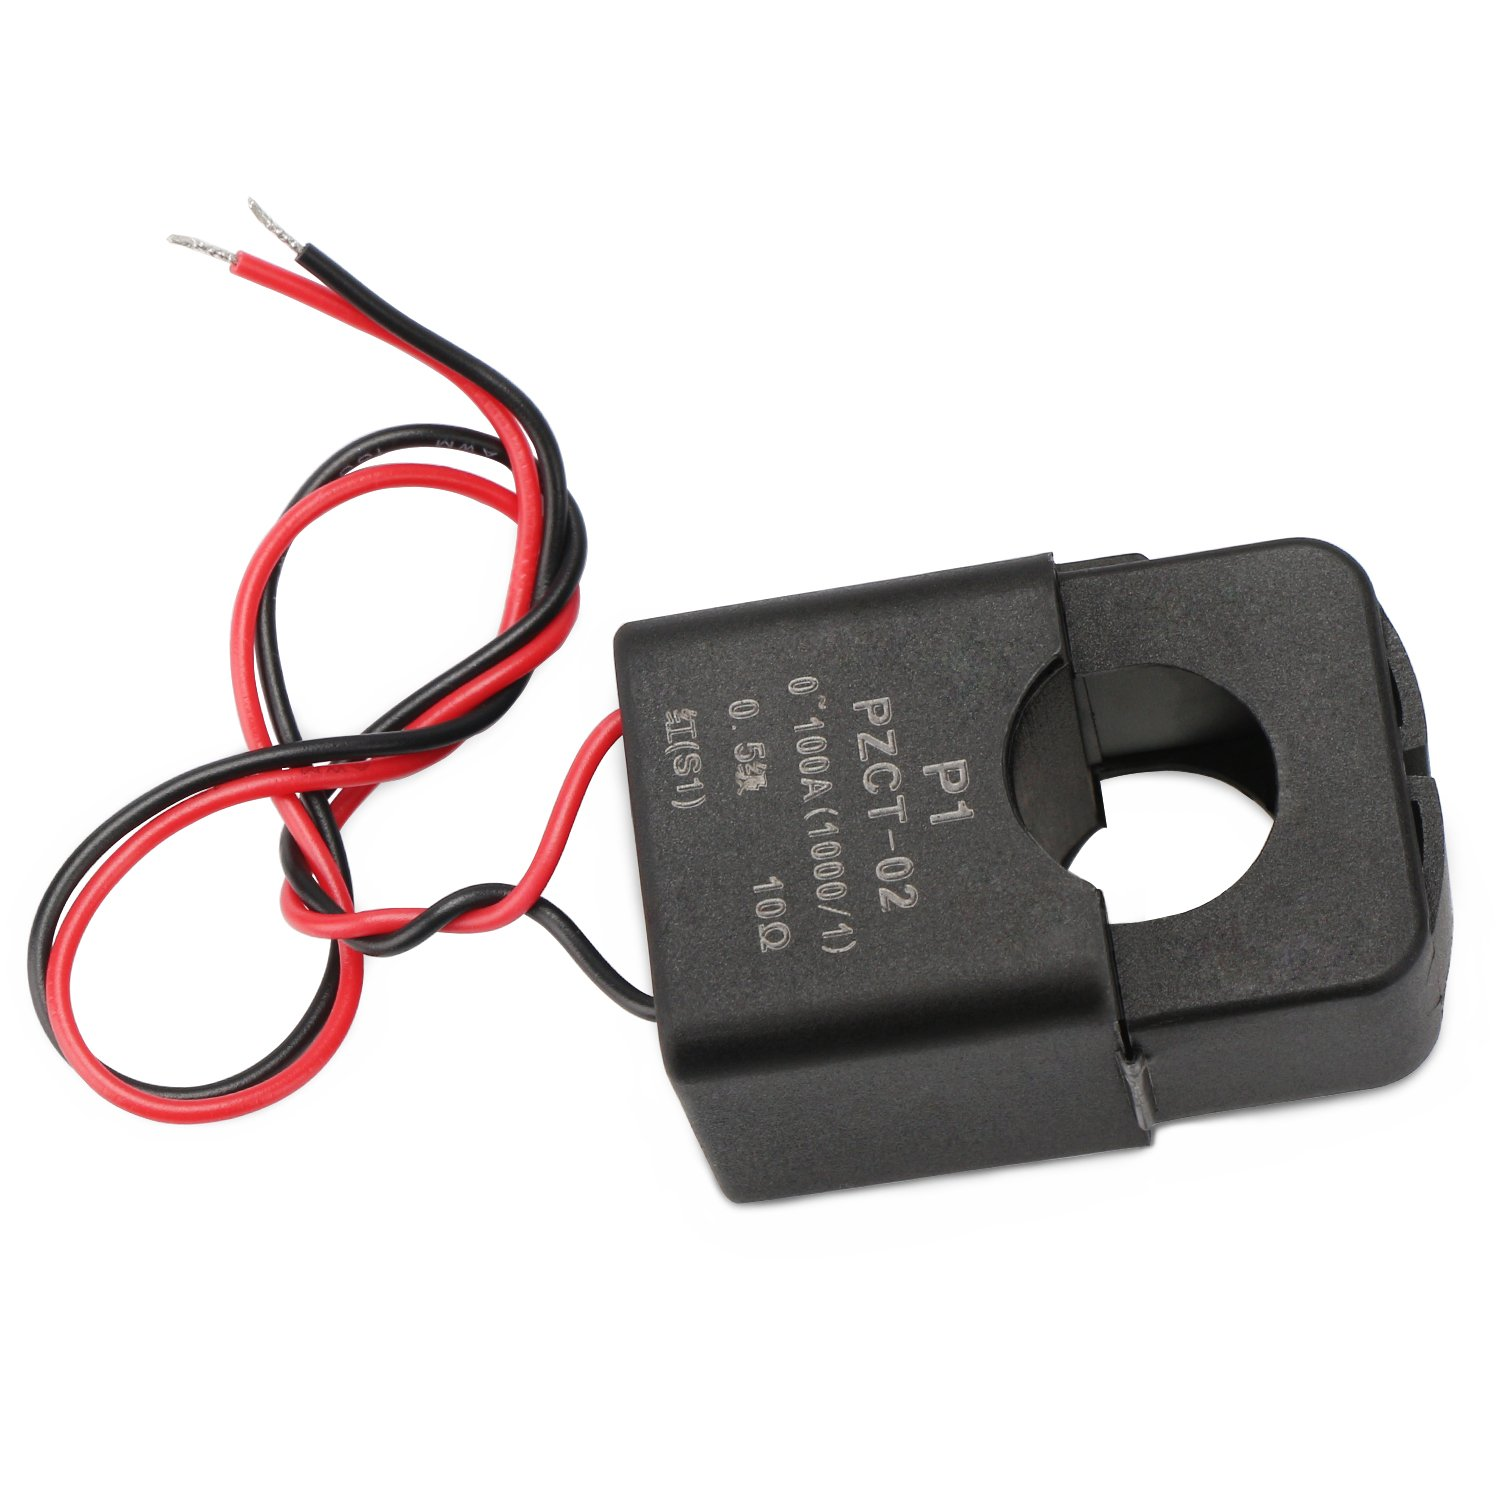 Current Transformer Drok 100a 100ma Ac Power Load Is Large The Use Of Transformers Mini Clip On Sensor Split Core Amp Sensing Relay